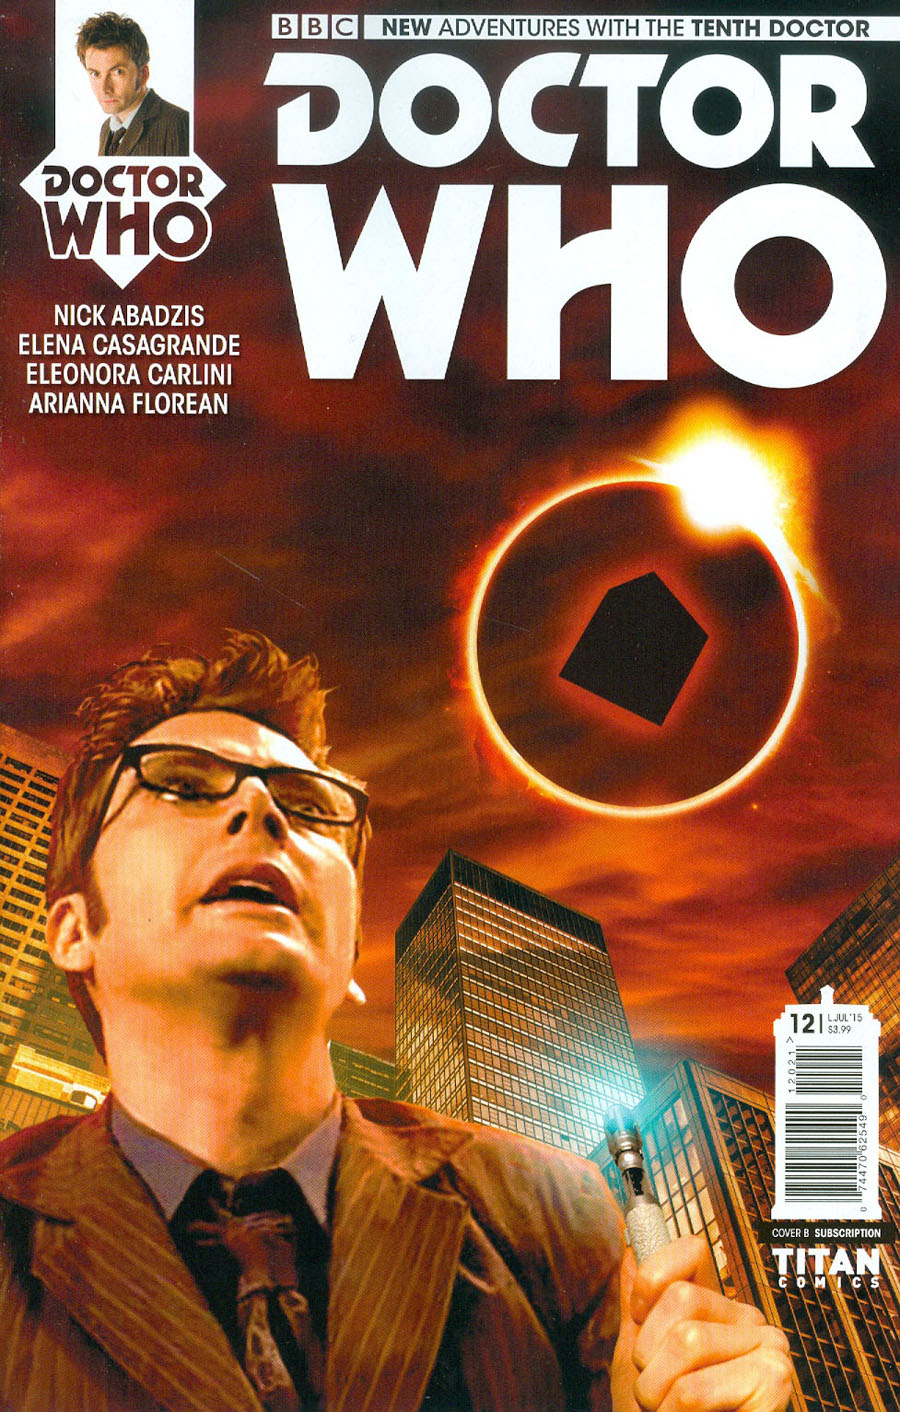 Doctor Who 10th Doctor #12 Cover B Variant Photo Subscription Cover